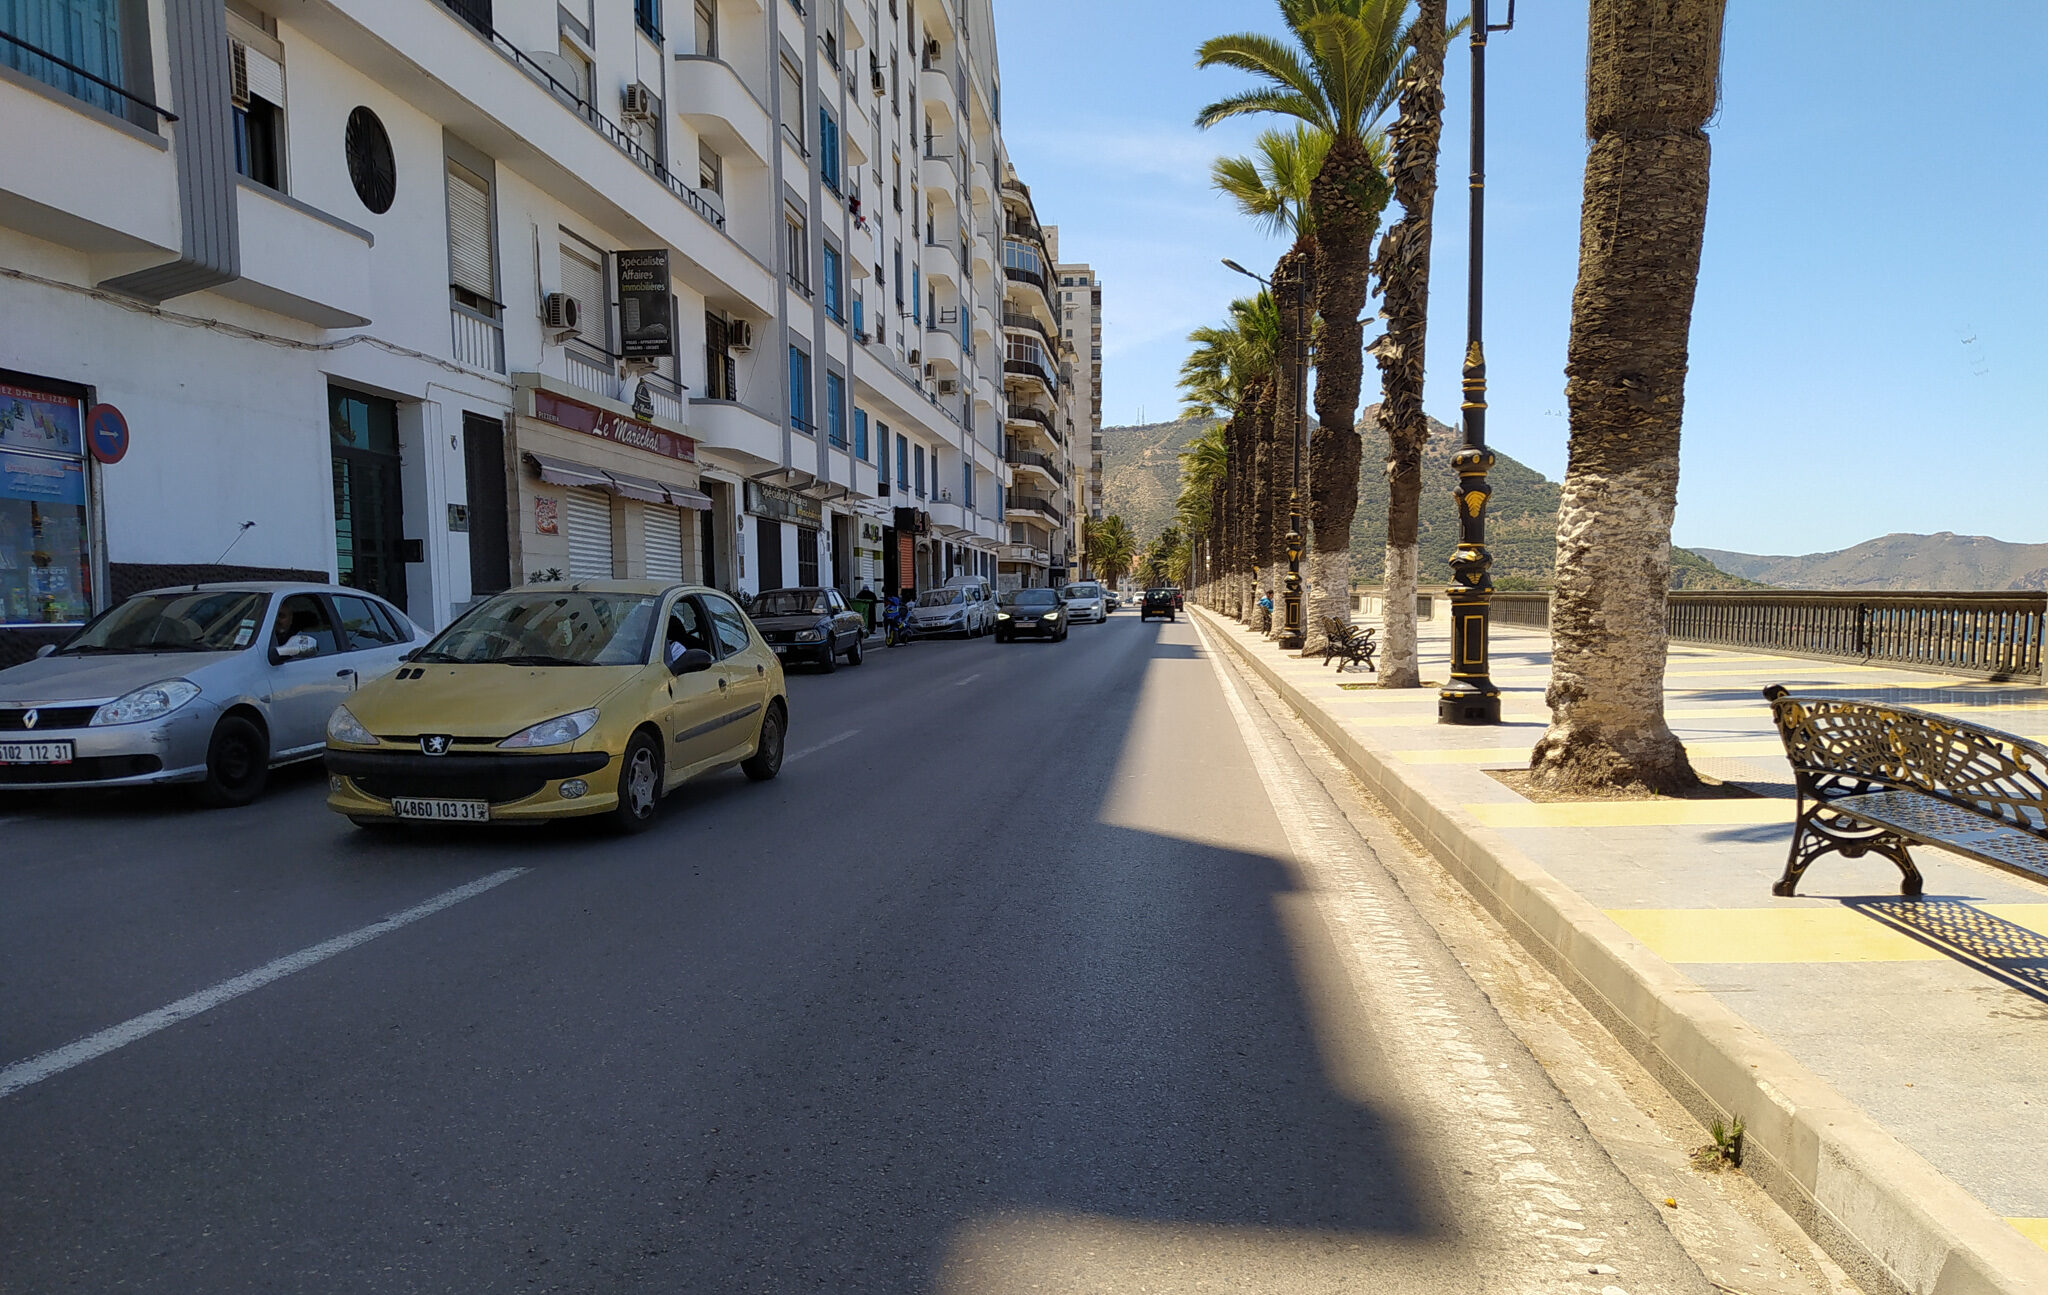 The streets of Oran are mostly deserted and devoid of any pedestrians on May 12, as city dwellers stay home to protect themselves from COVID-19. Farid Sait/Zenger)